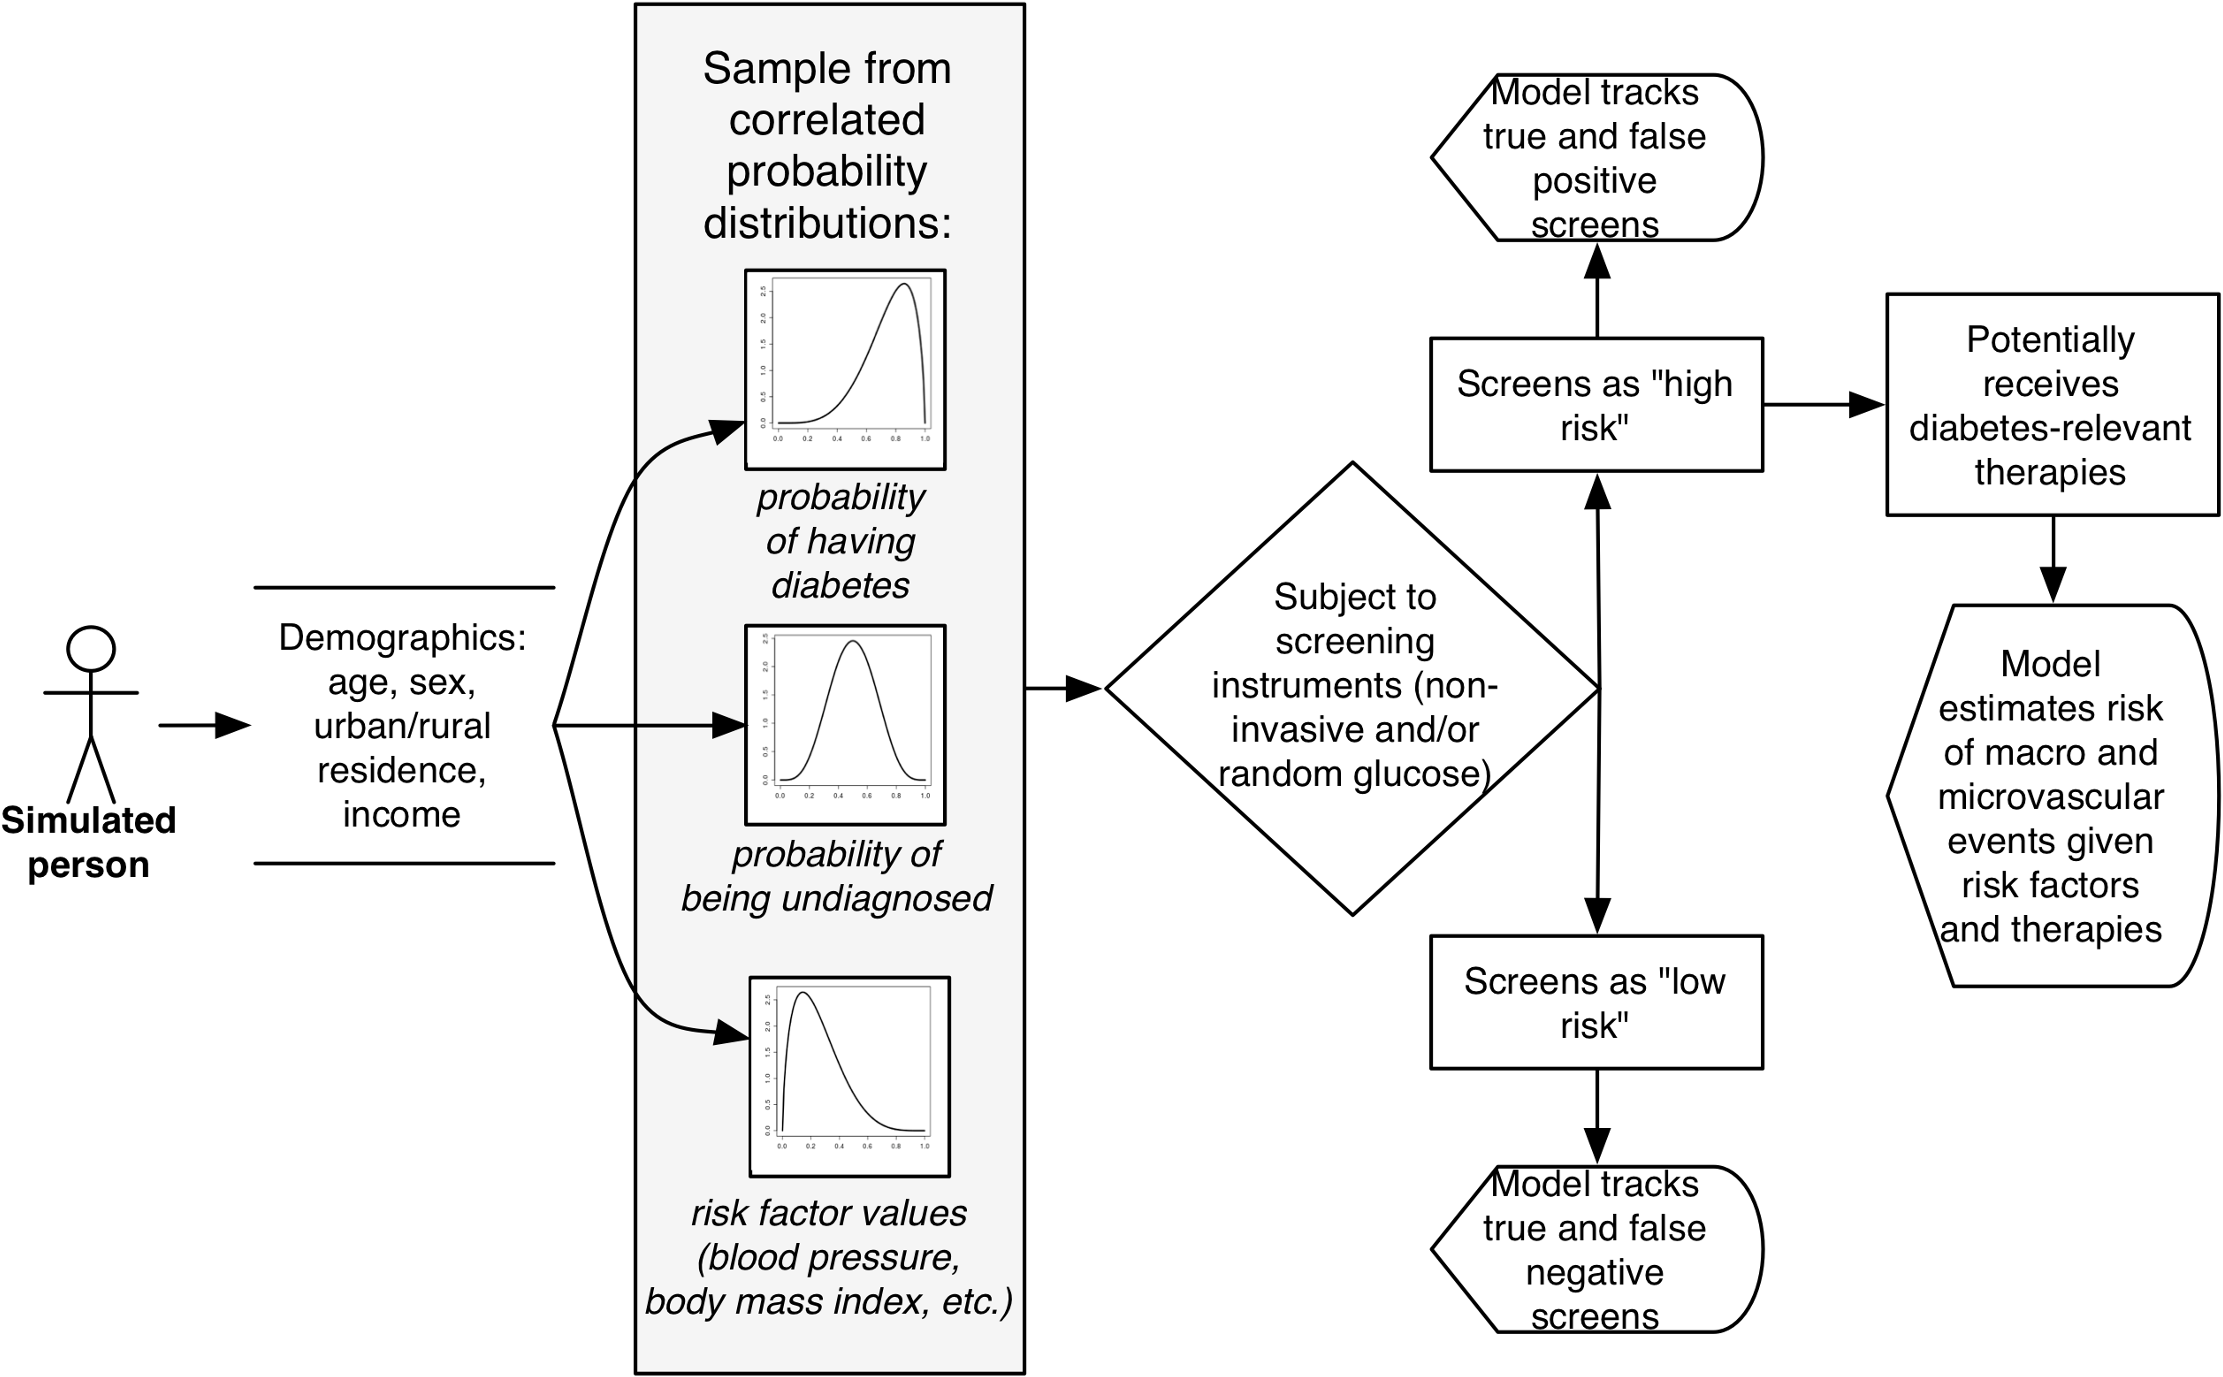 Model diagram. Individuals in the simulated population are assigned demographic characteristics based on the joint probabilities of being in each age, sex, location, and income group given population demographic estimates for India.